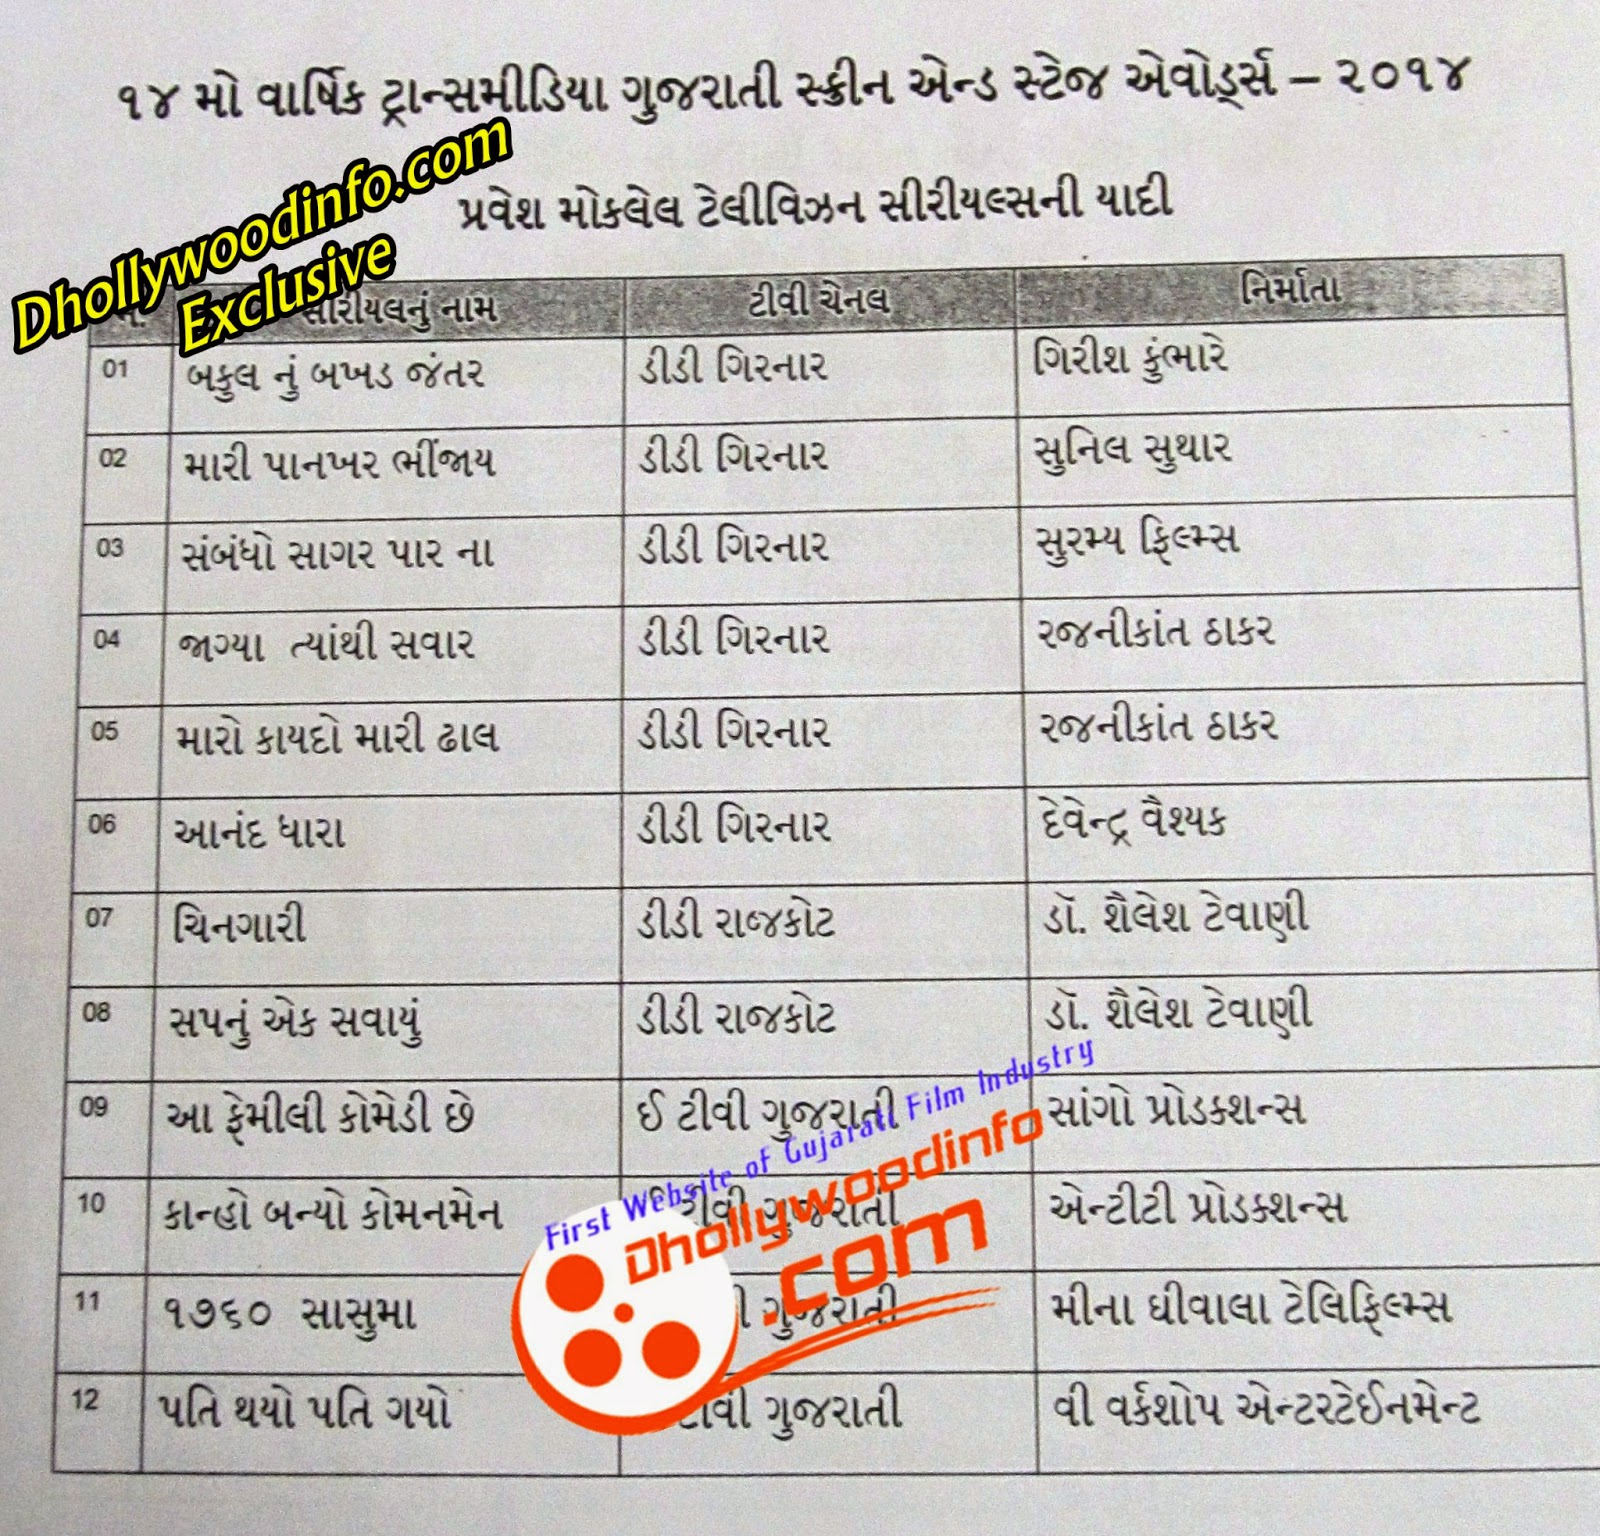 Entry of TV Serial for Transmedia Gujarati Screen & Stage Awards 2014